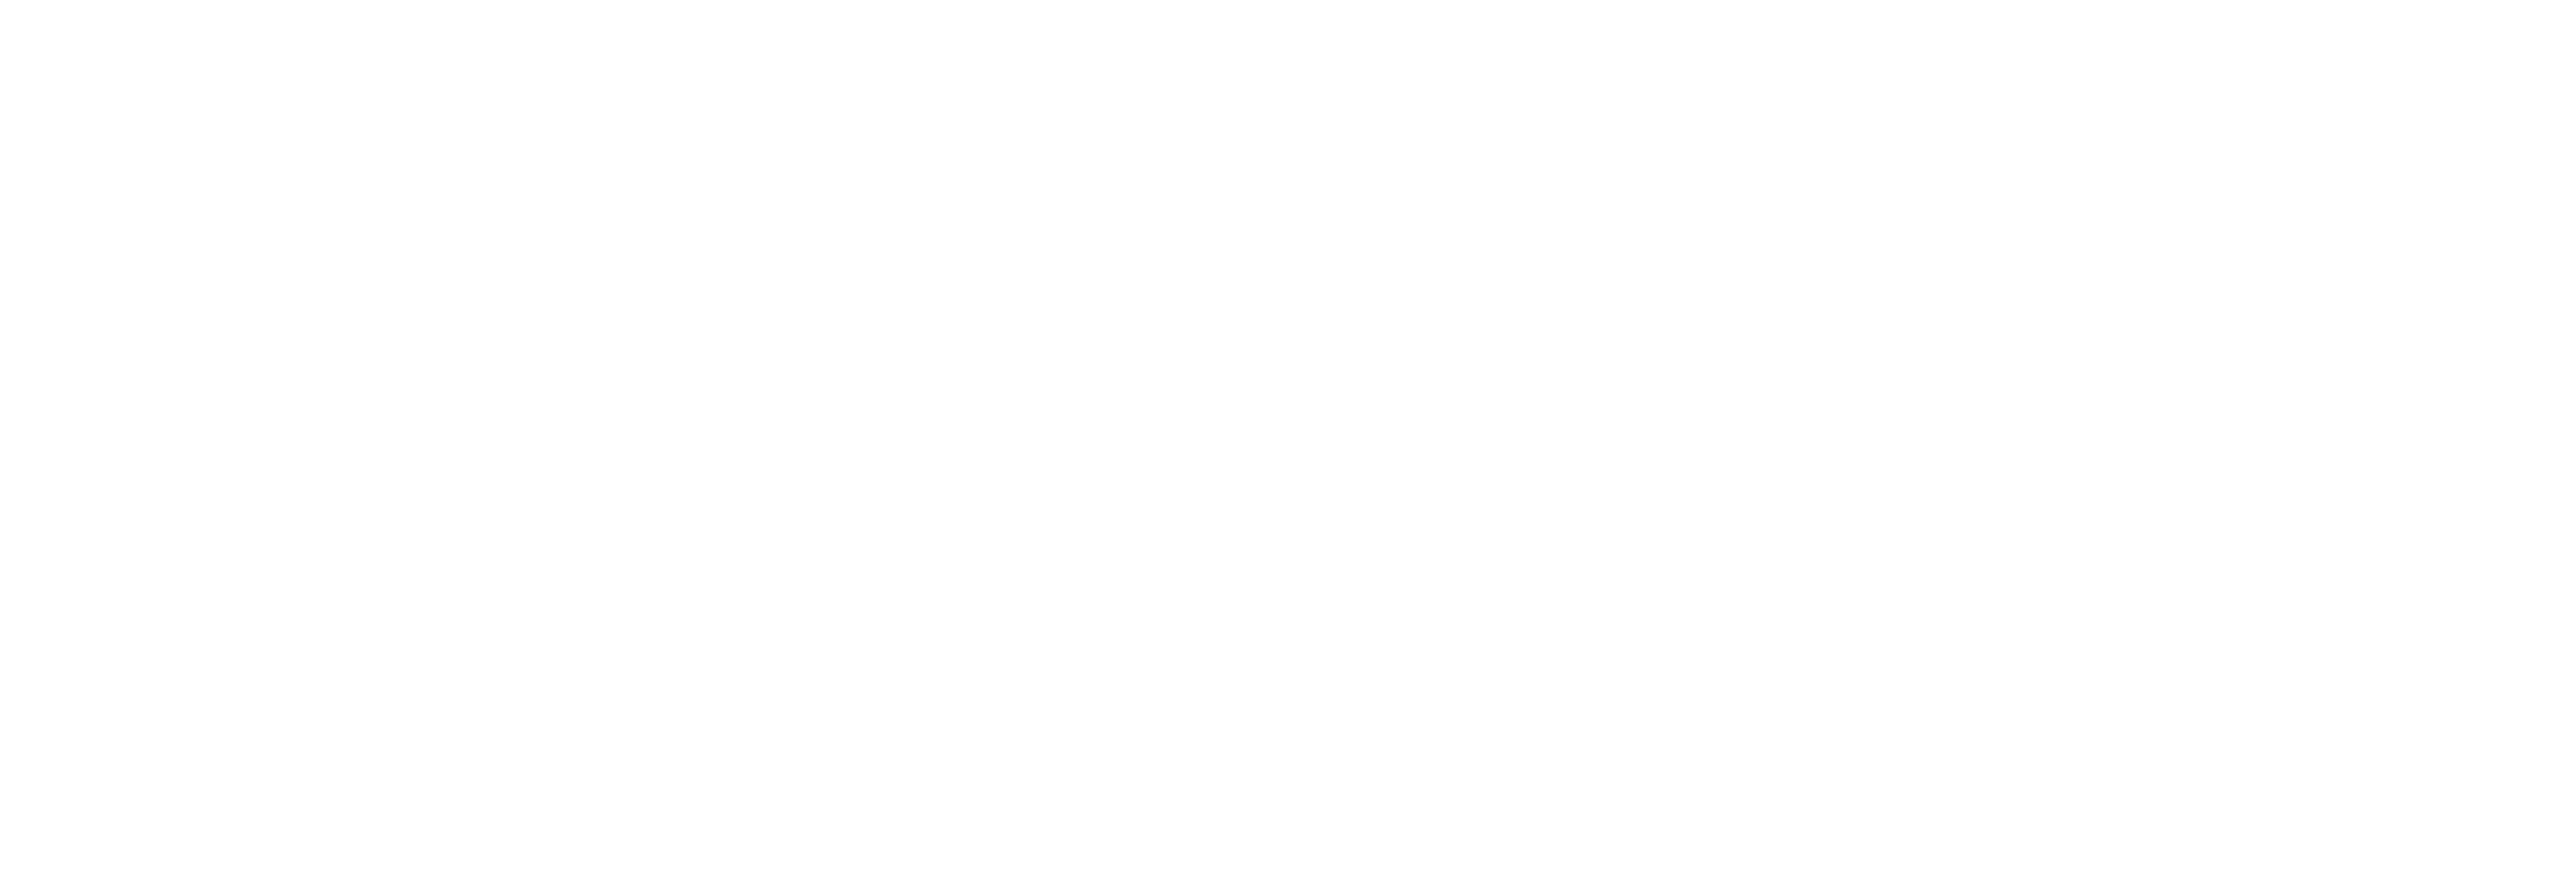 Ars Colors Box